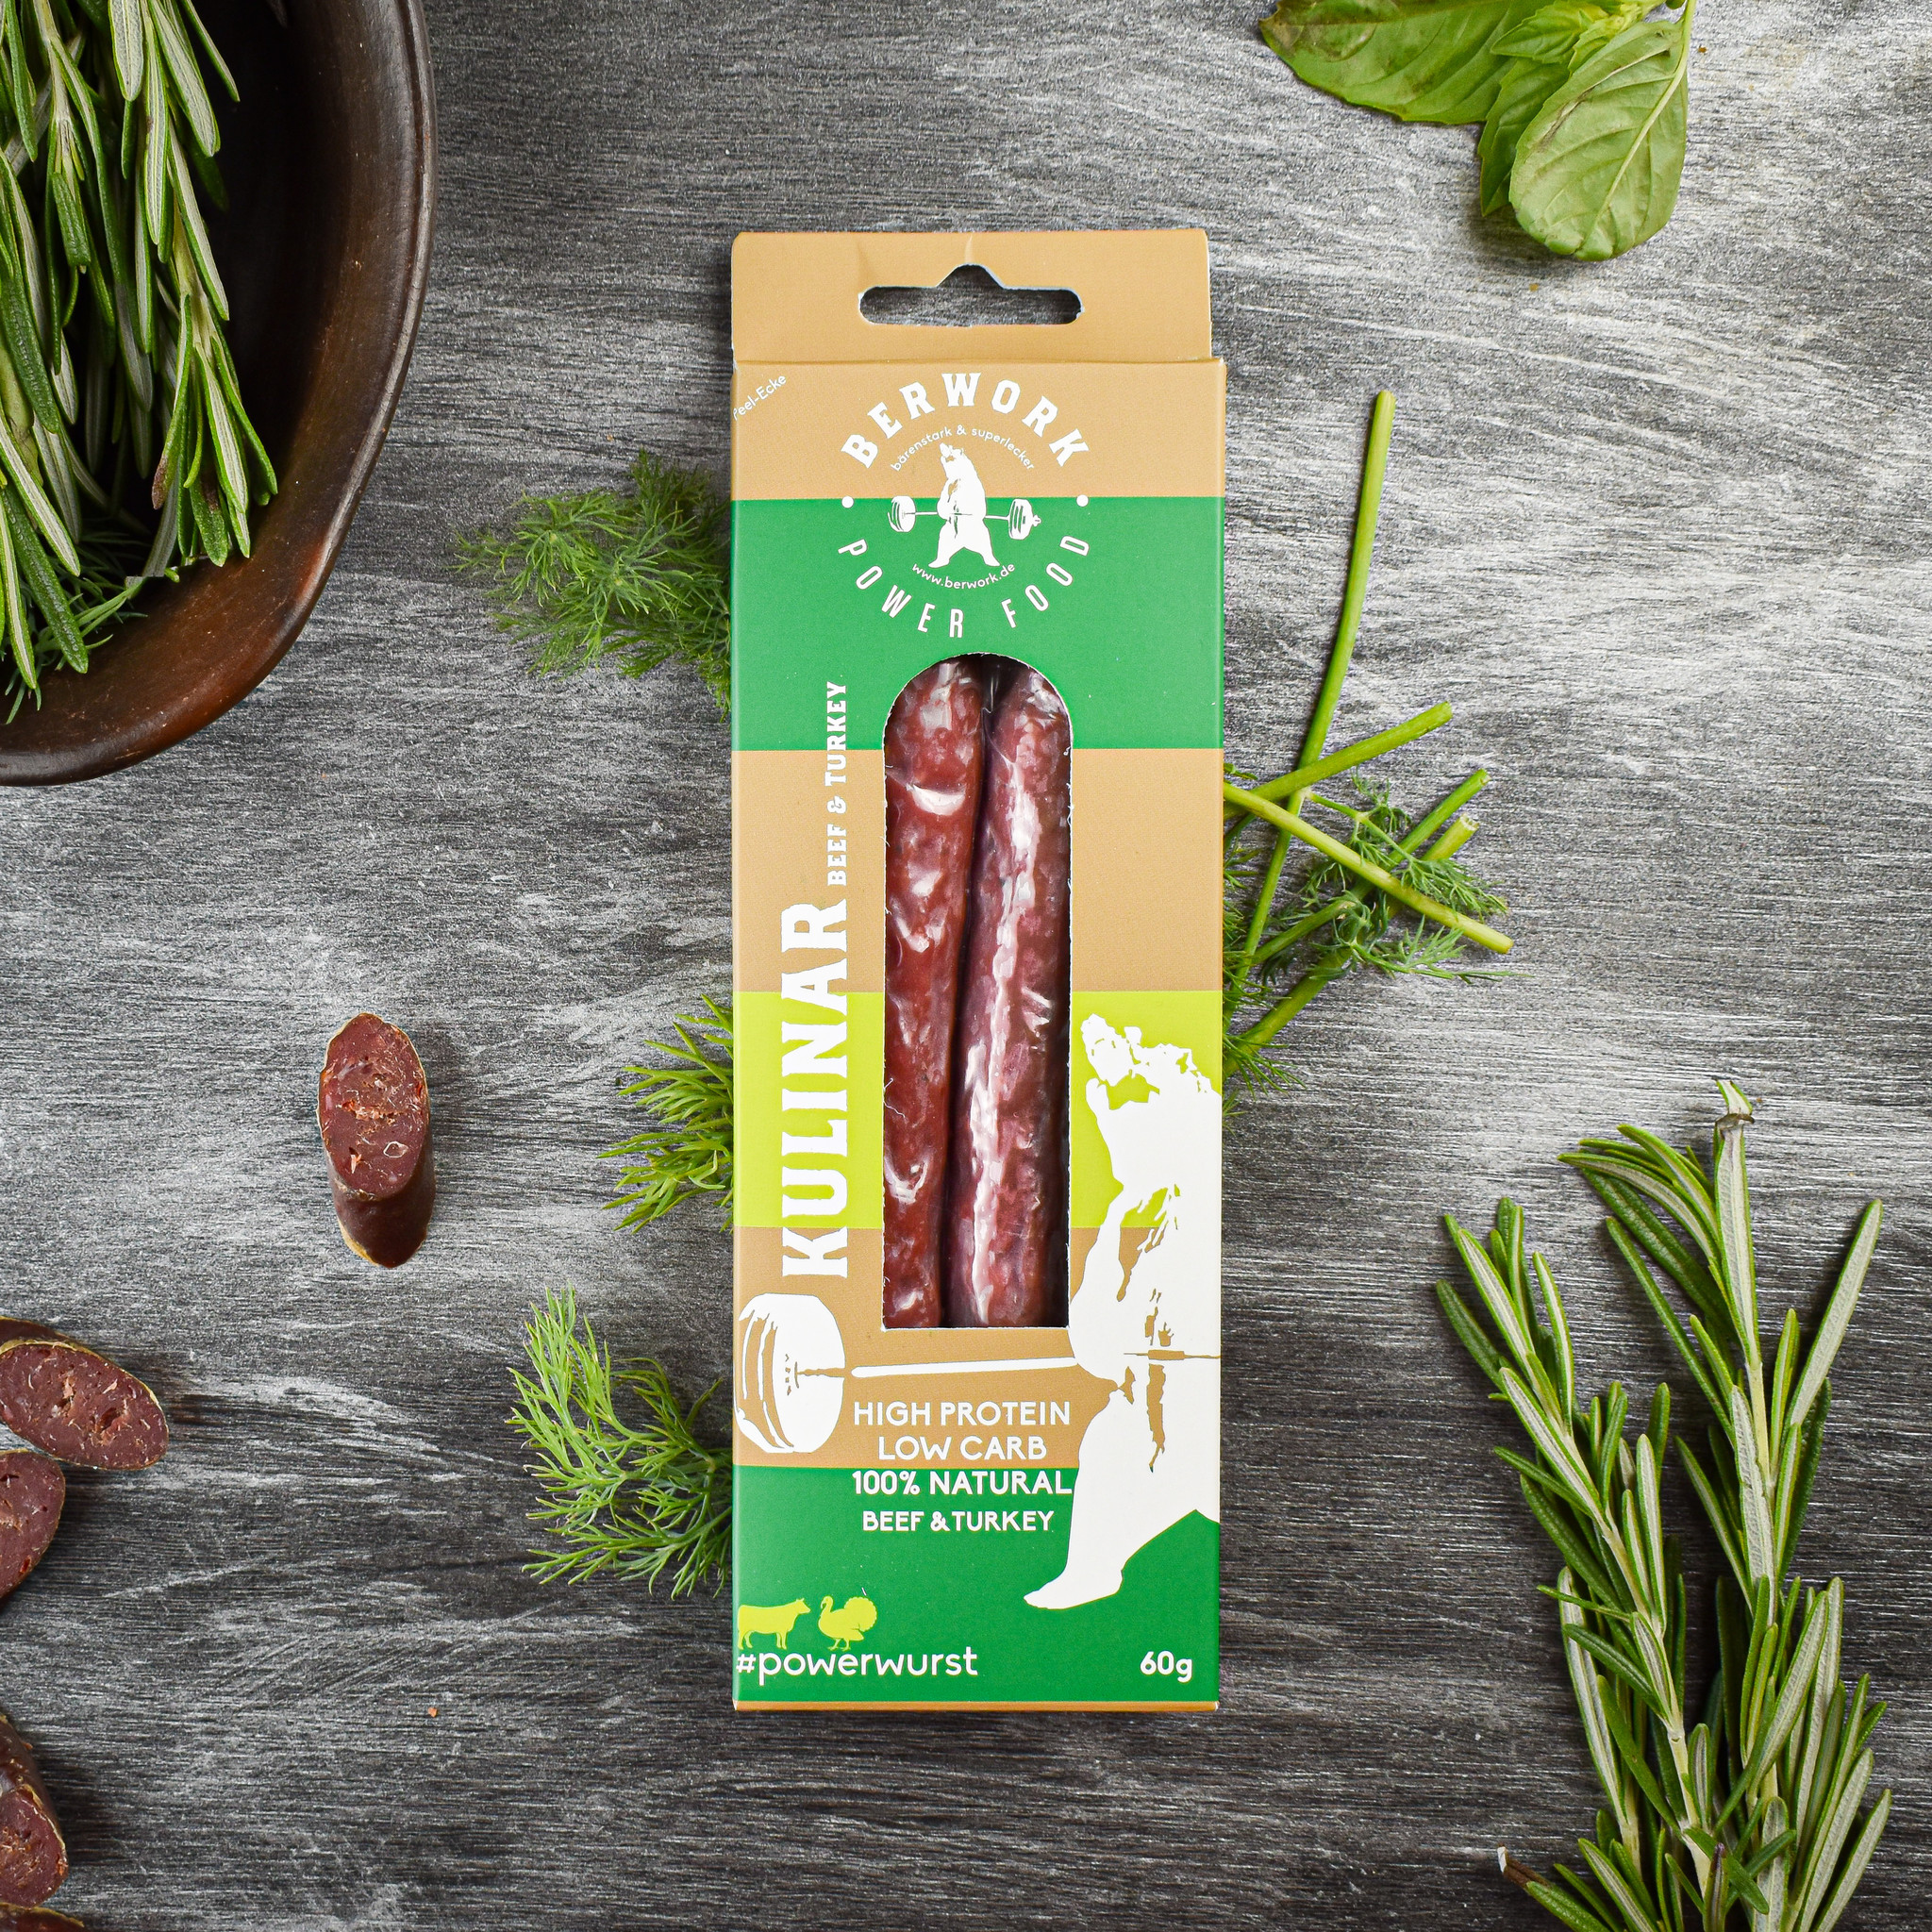 berwork Power sausage Kulinar Beef-Turkey meat (60g)